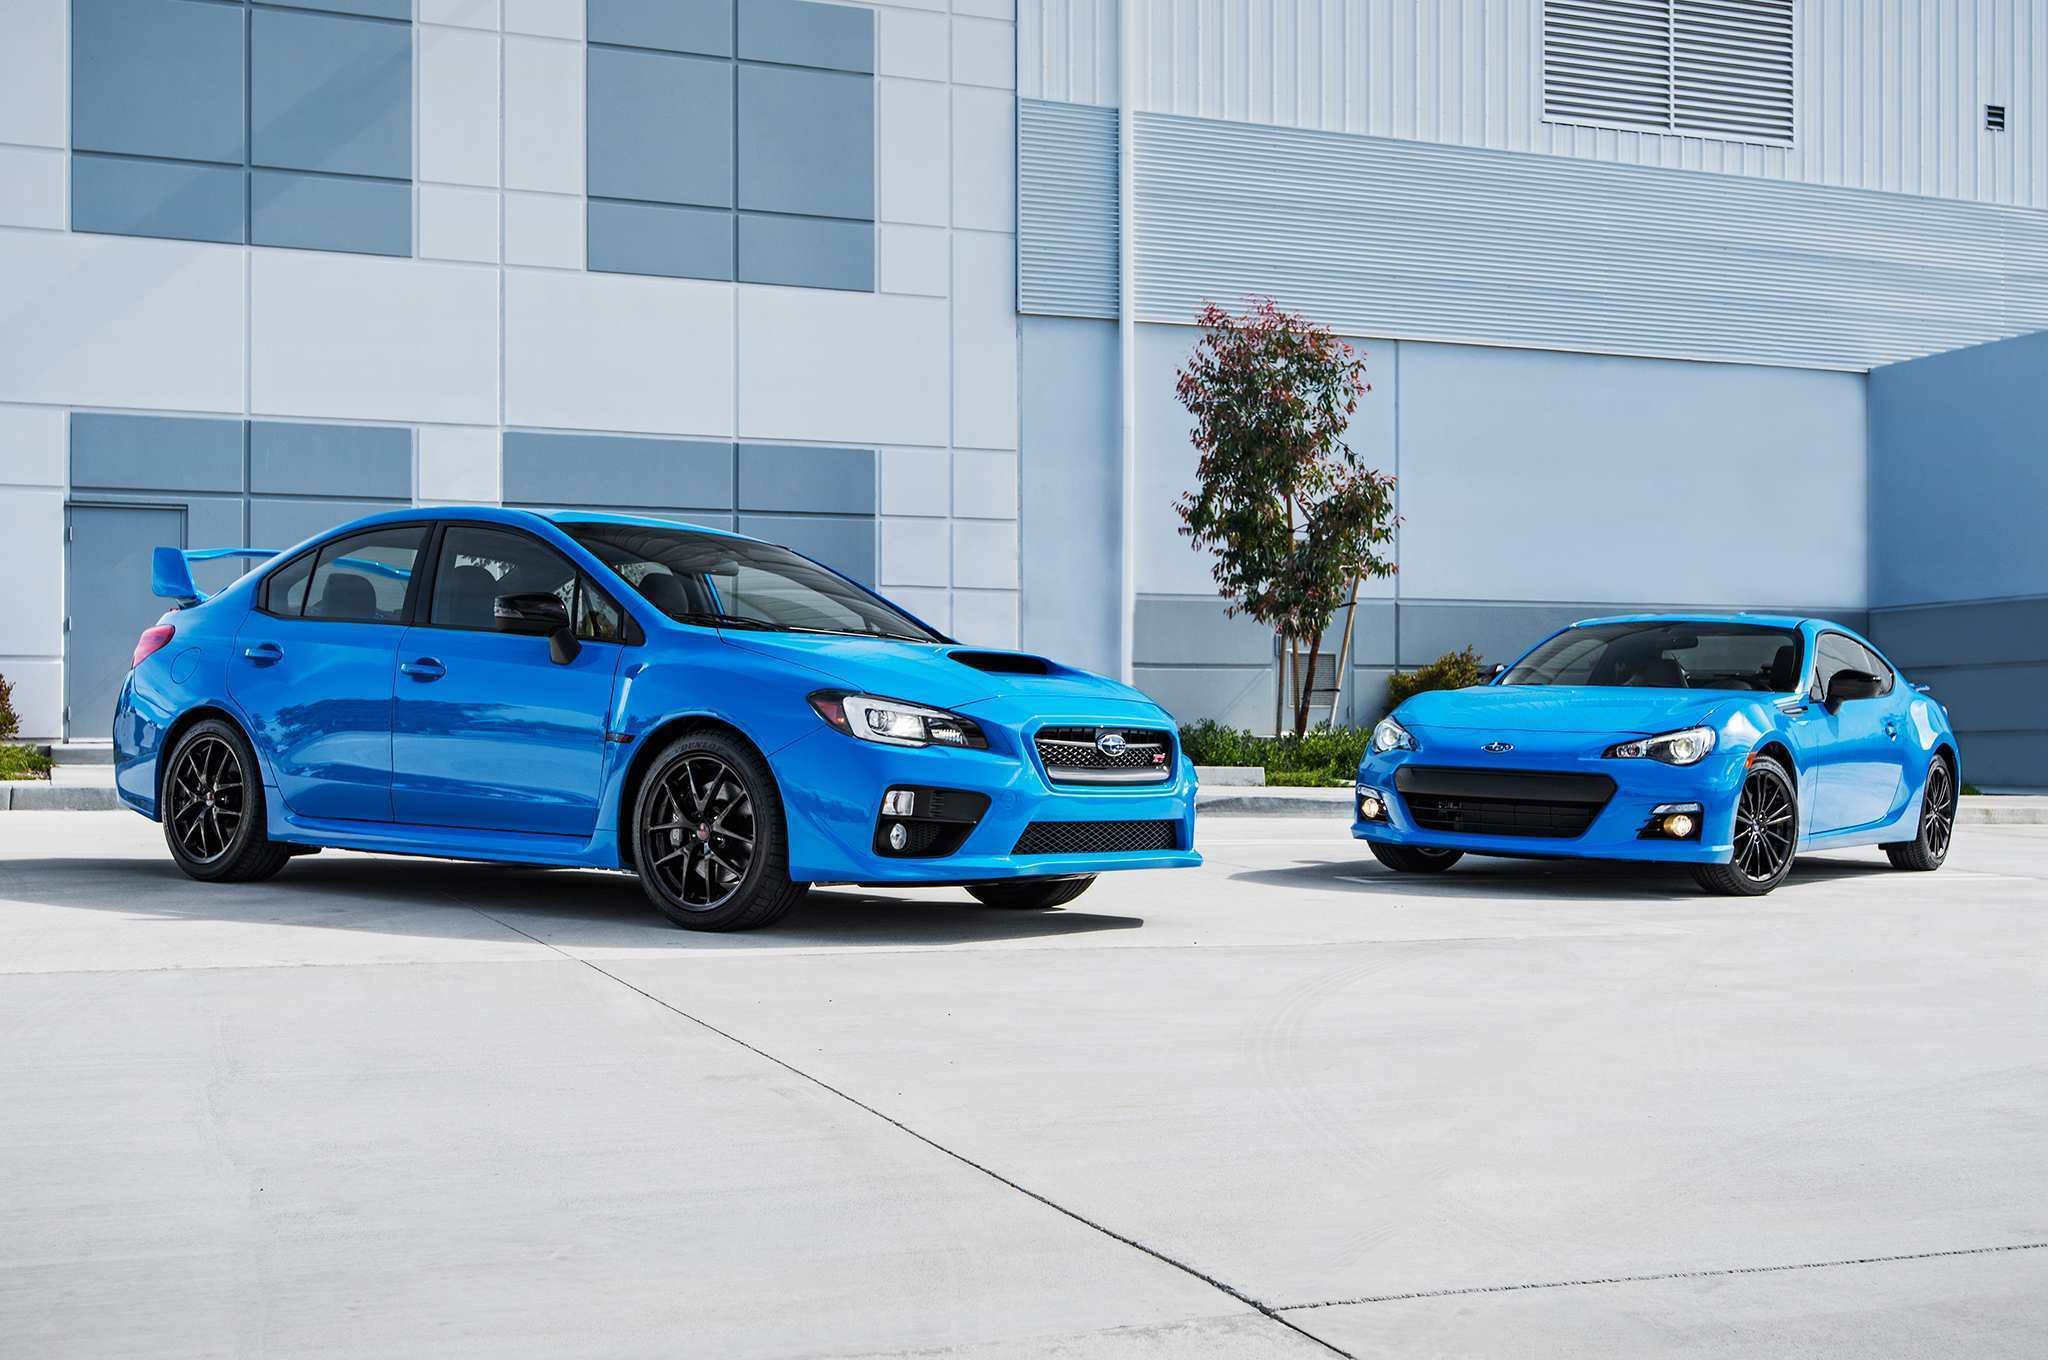 78 The Best 2020 Wrx Sti Hyperblue Rumors